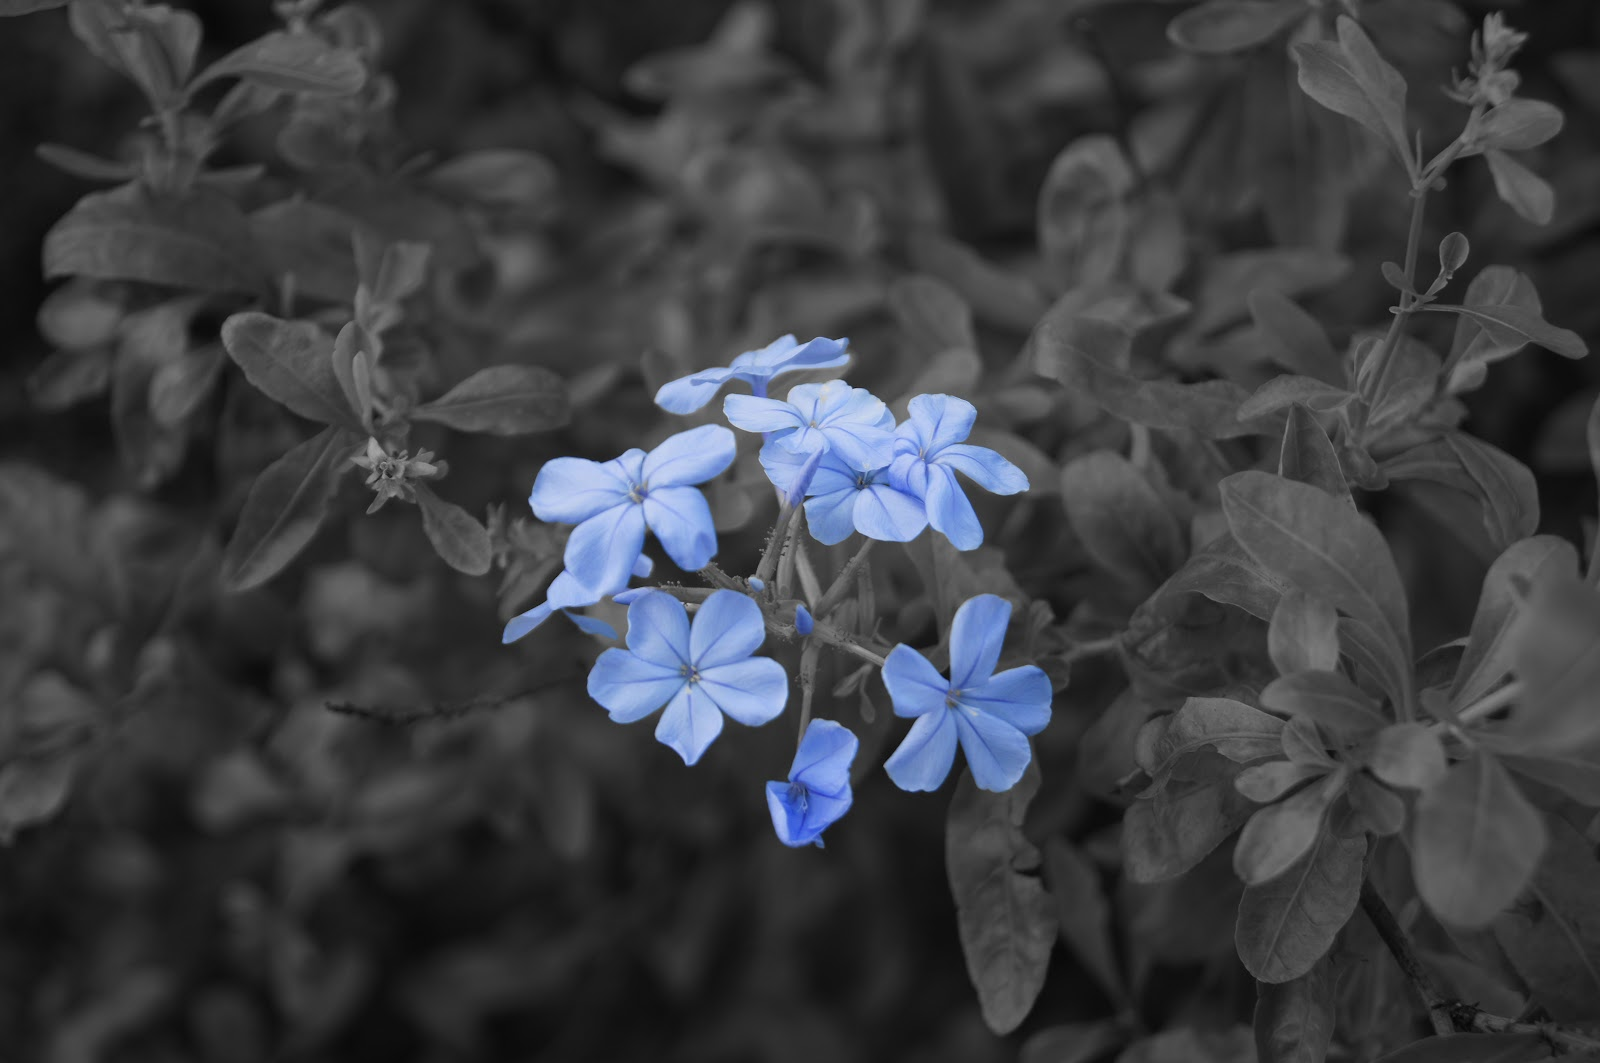 Black And White Photography Flowers With Color Accents